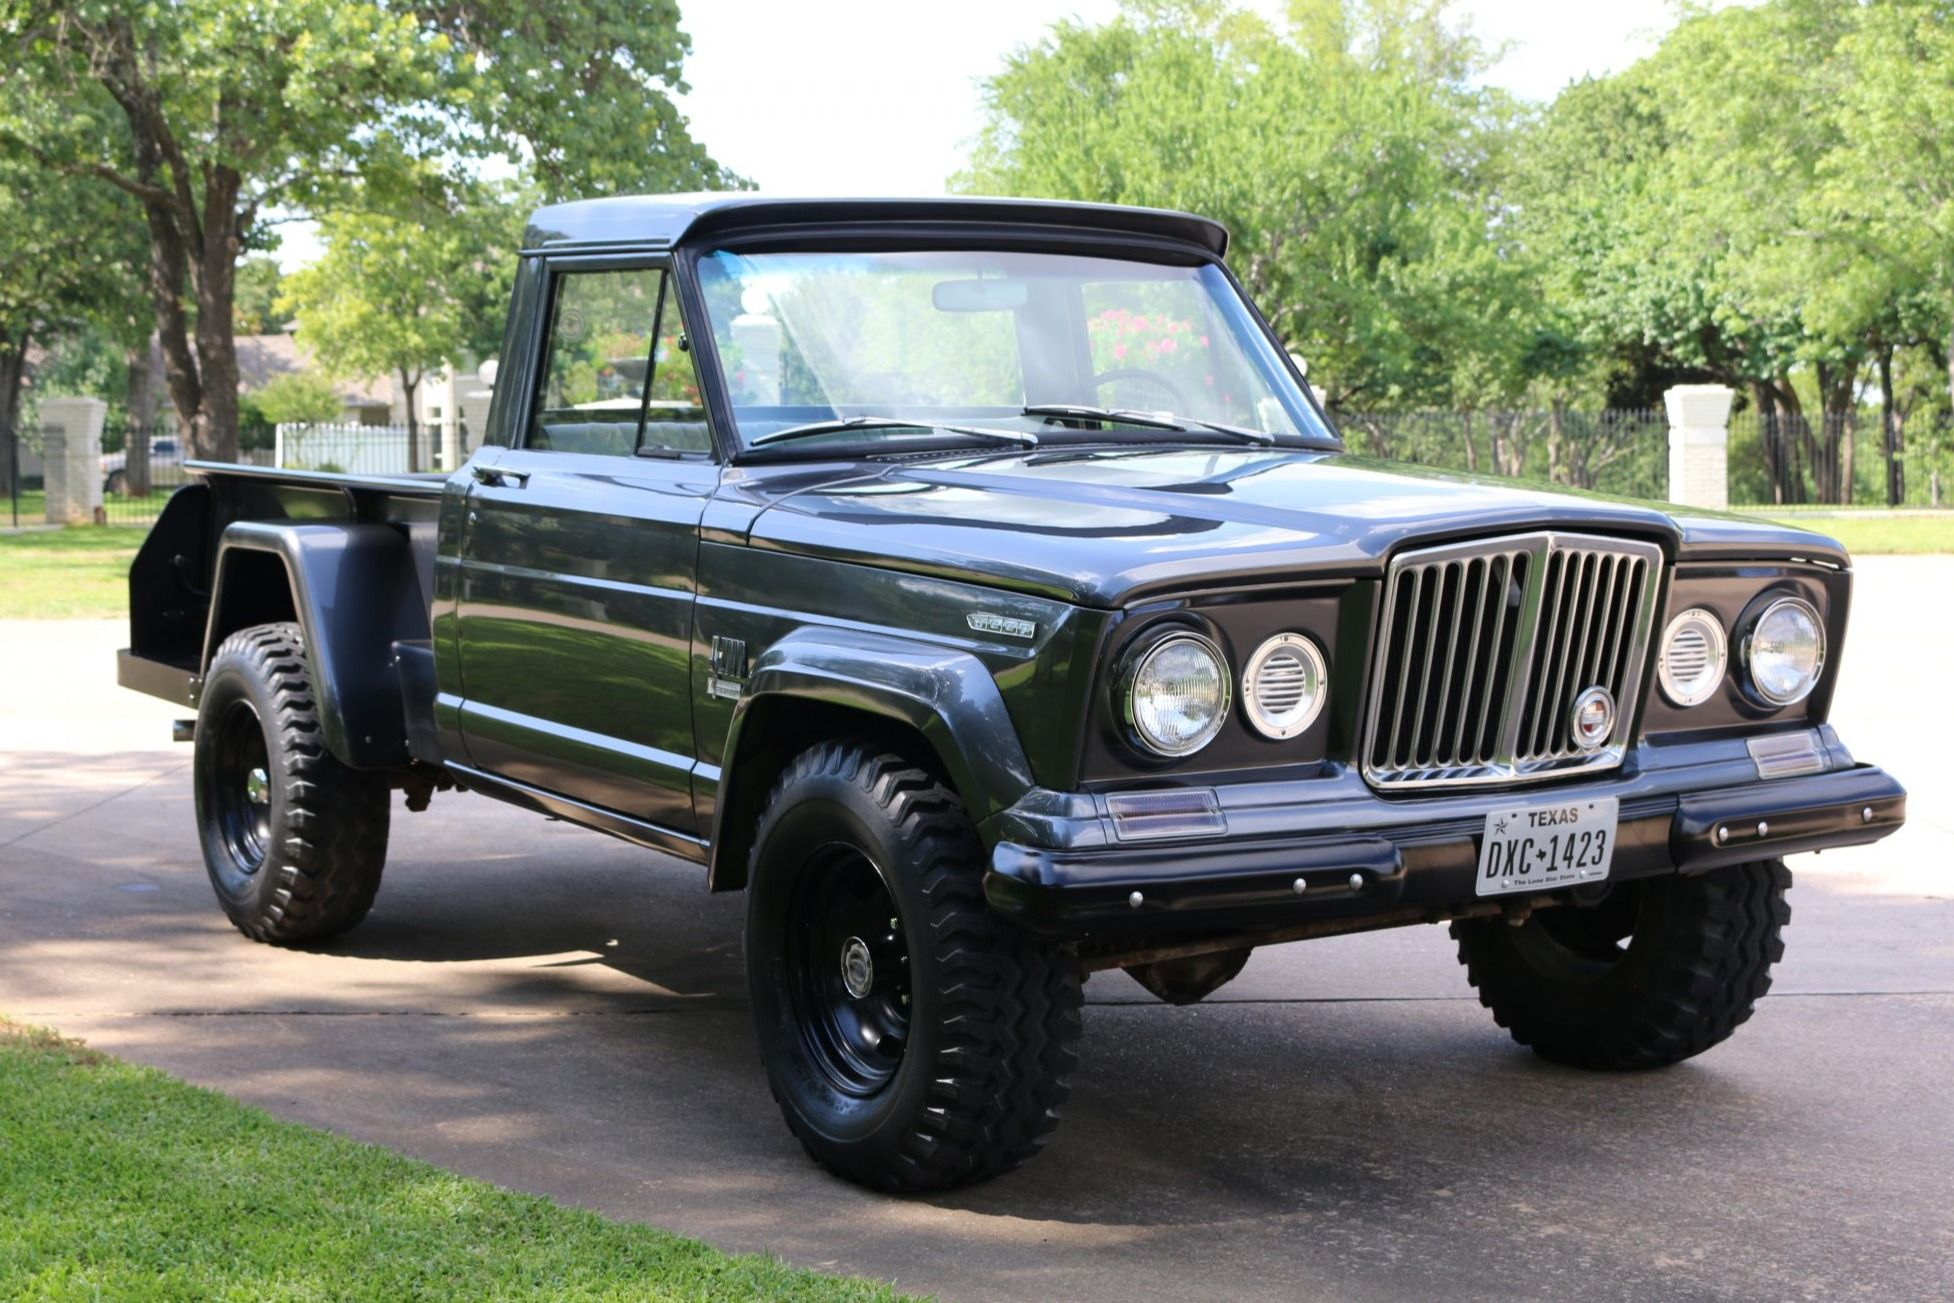 1969 Jeep Gladiator Thriftside 4x4 in 2020 Jeep